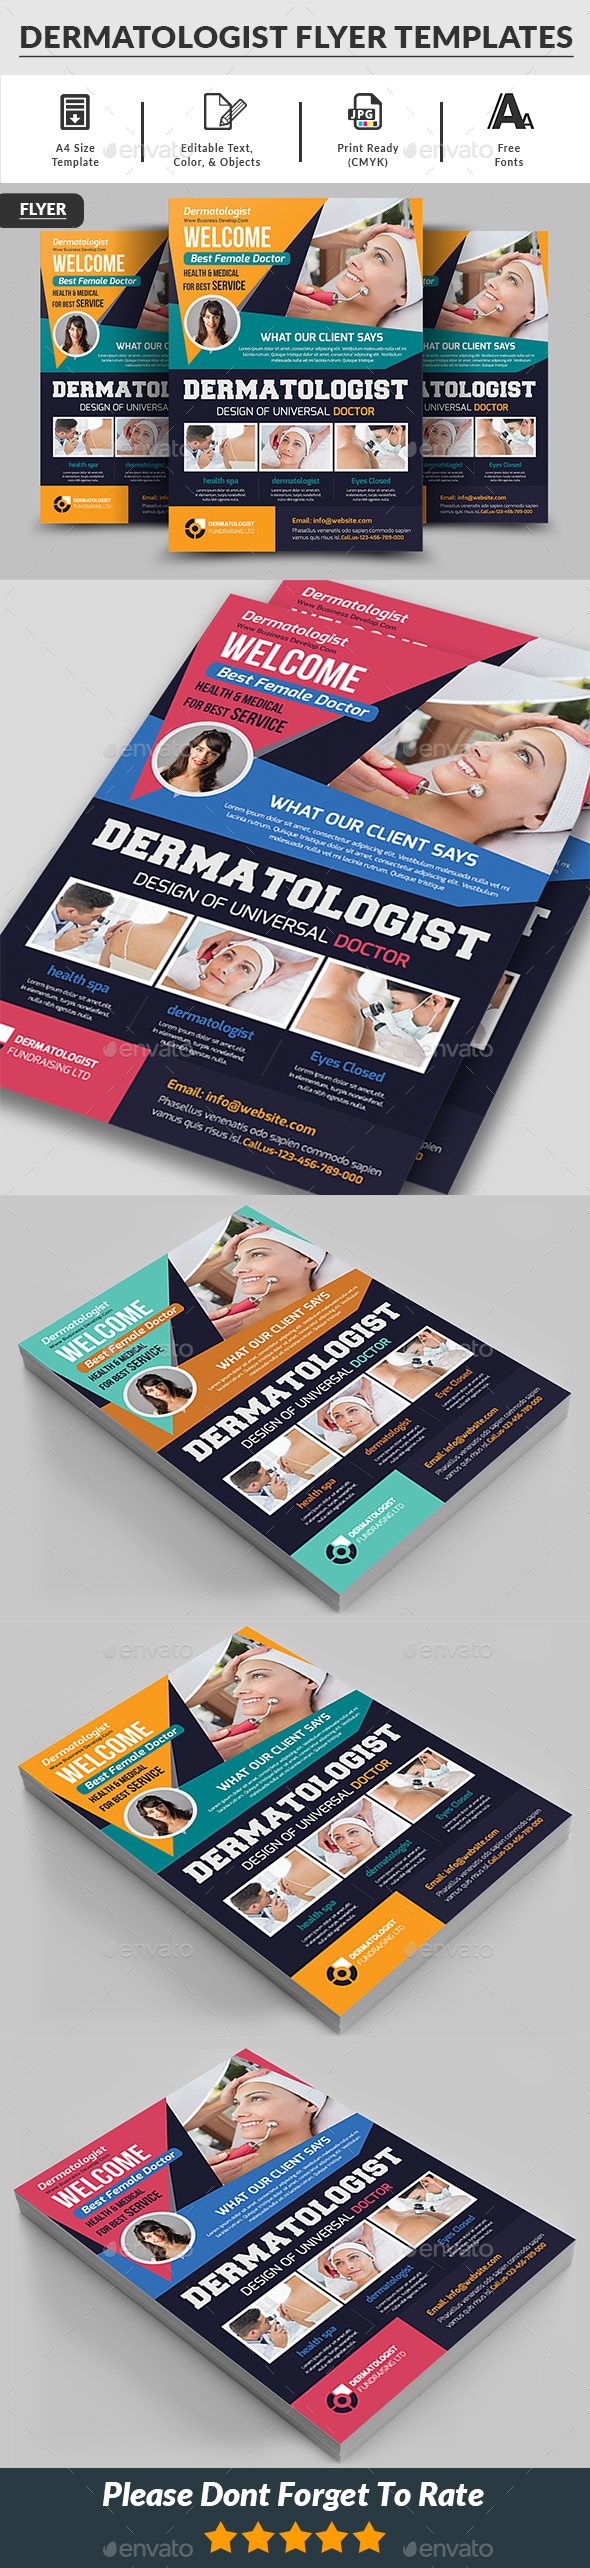 Dermatologist Flyer Templates - Corporate Flyers